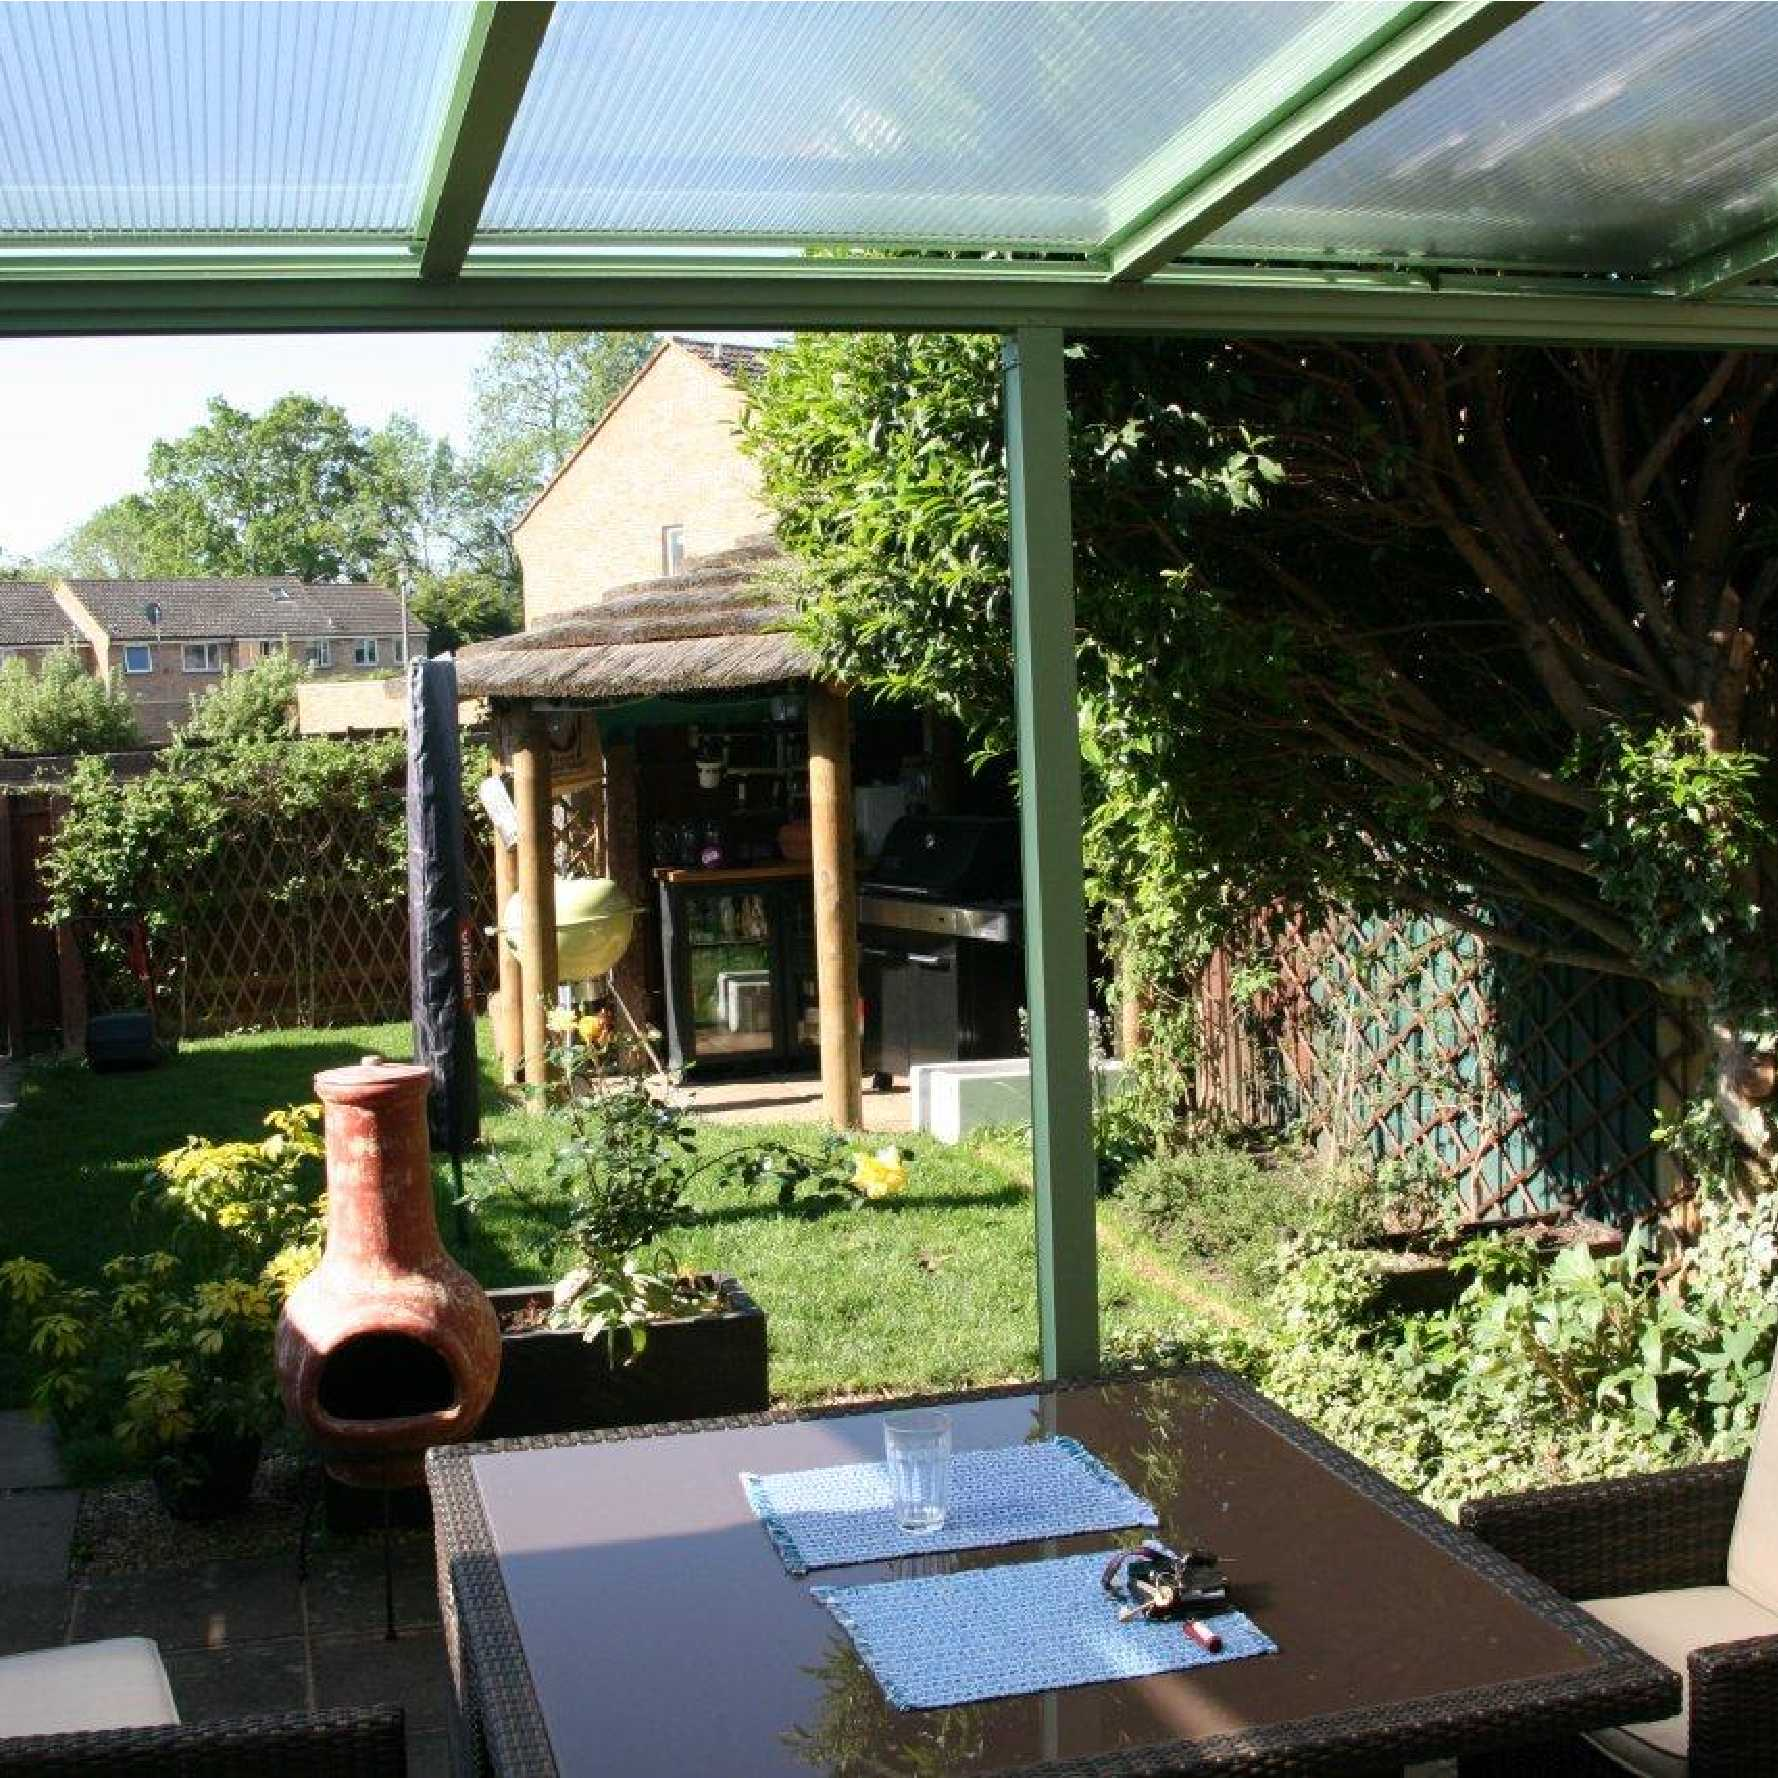 Affordable Omega Smart White Lean-To Canopy with 16mm Polycarbonate Glazing - 7.4m (W) x 1.5m (P), (4) Supporting Posts